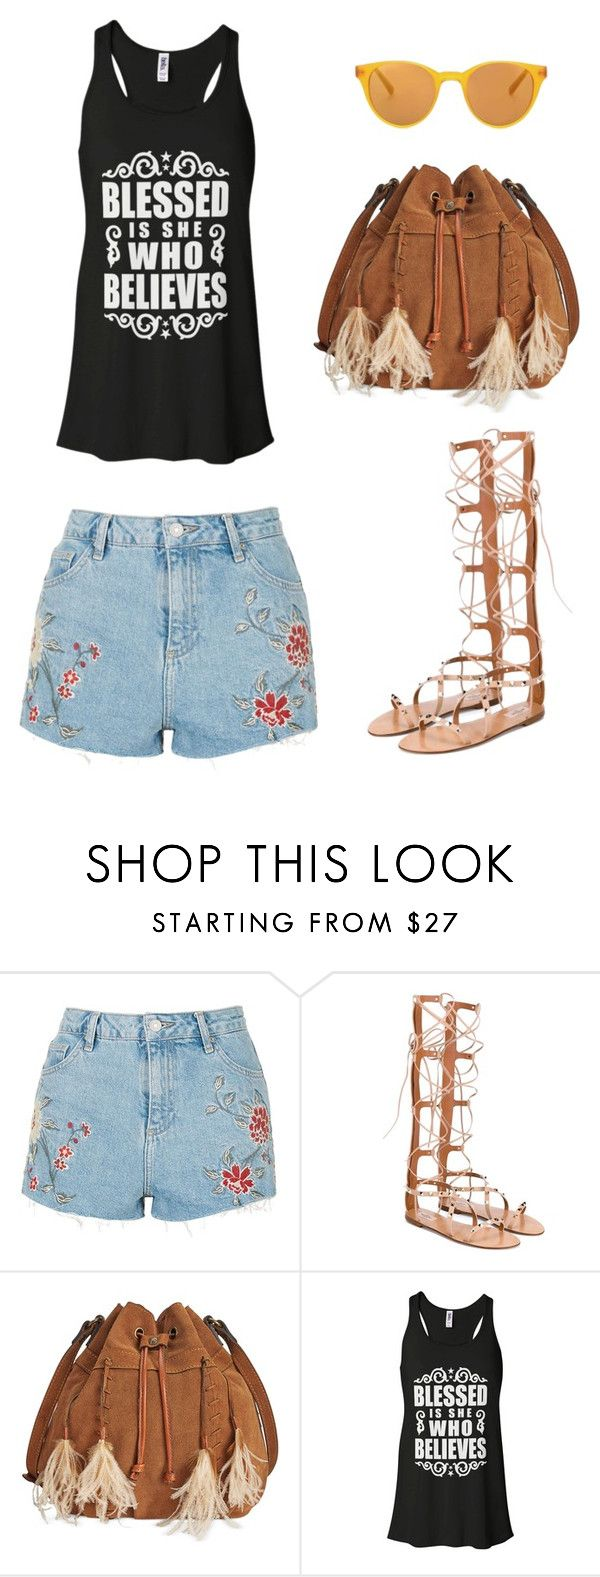 """Prepare for summer"" by larycao ❤ liked on Polyvore featuring Topshop, Valentino, Patricia Nash and Sun Buddies"